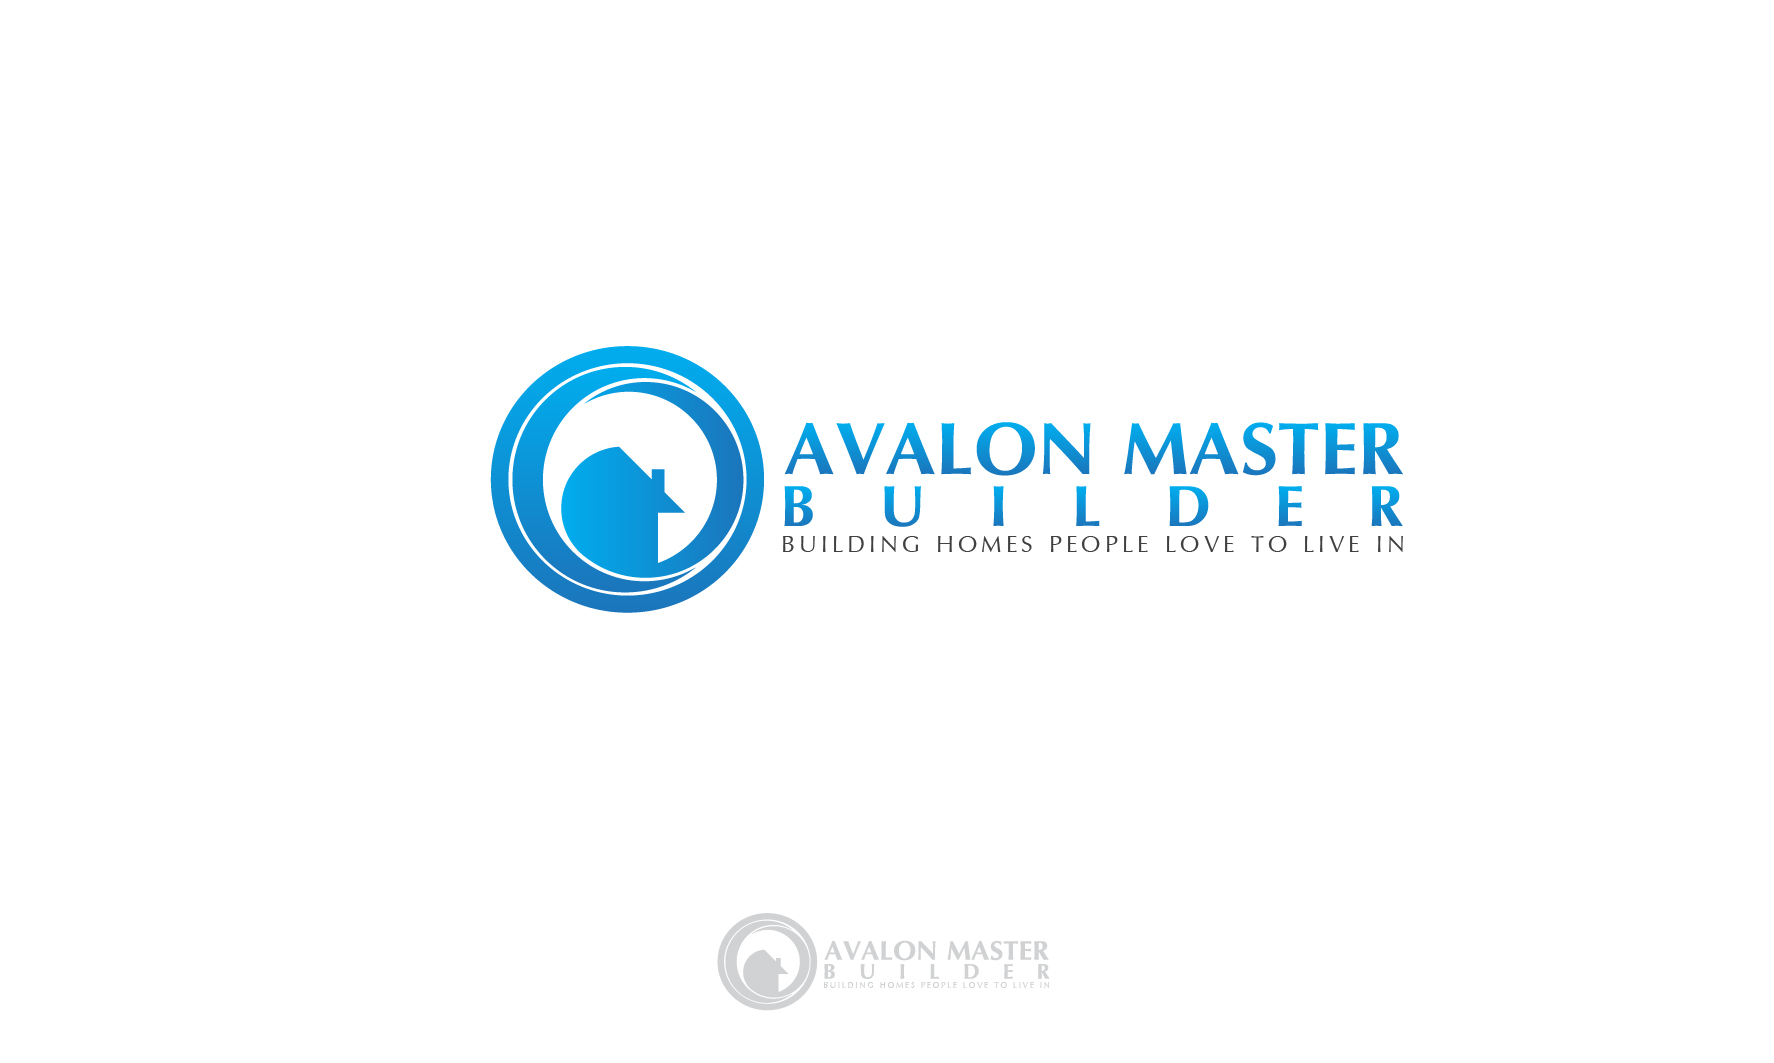 Logo Design by 3draw - Entry No. 50 in the Logo Design Contest Avalon Master Builder Logo Design.